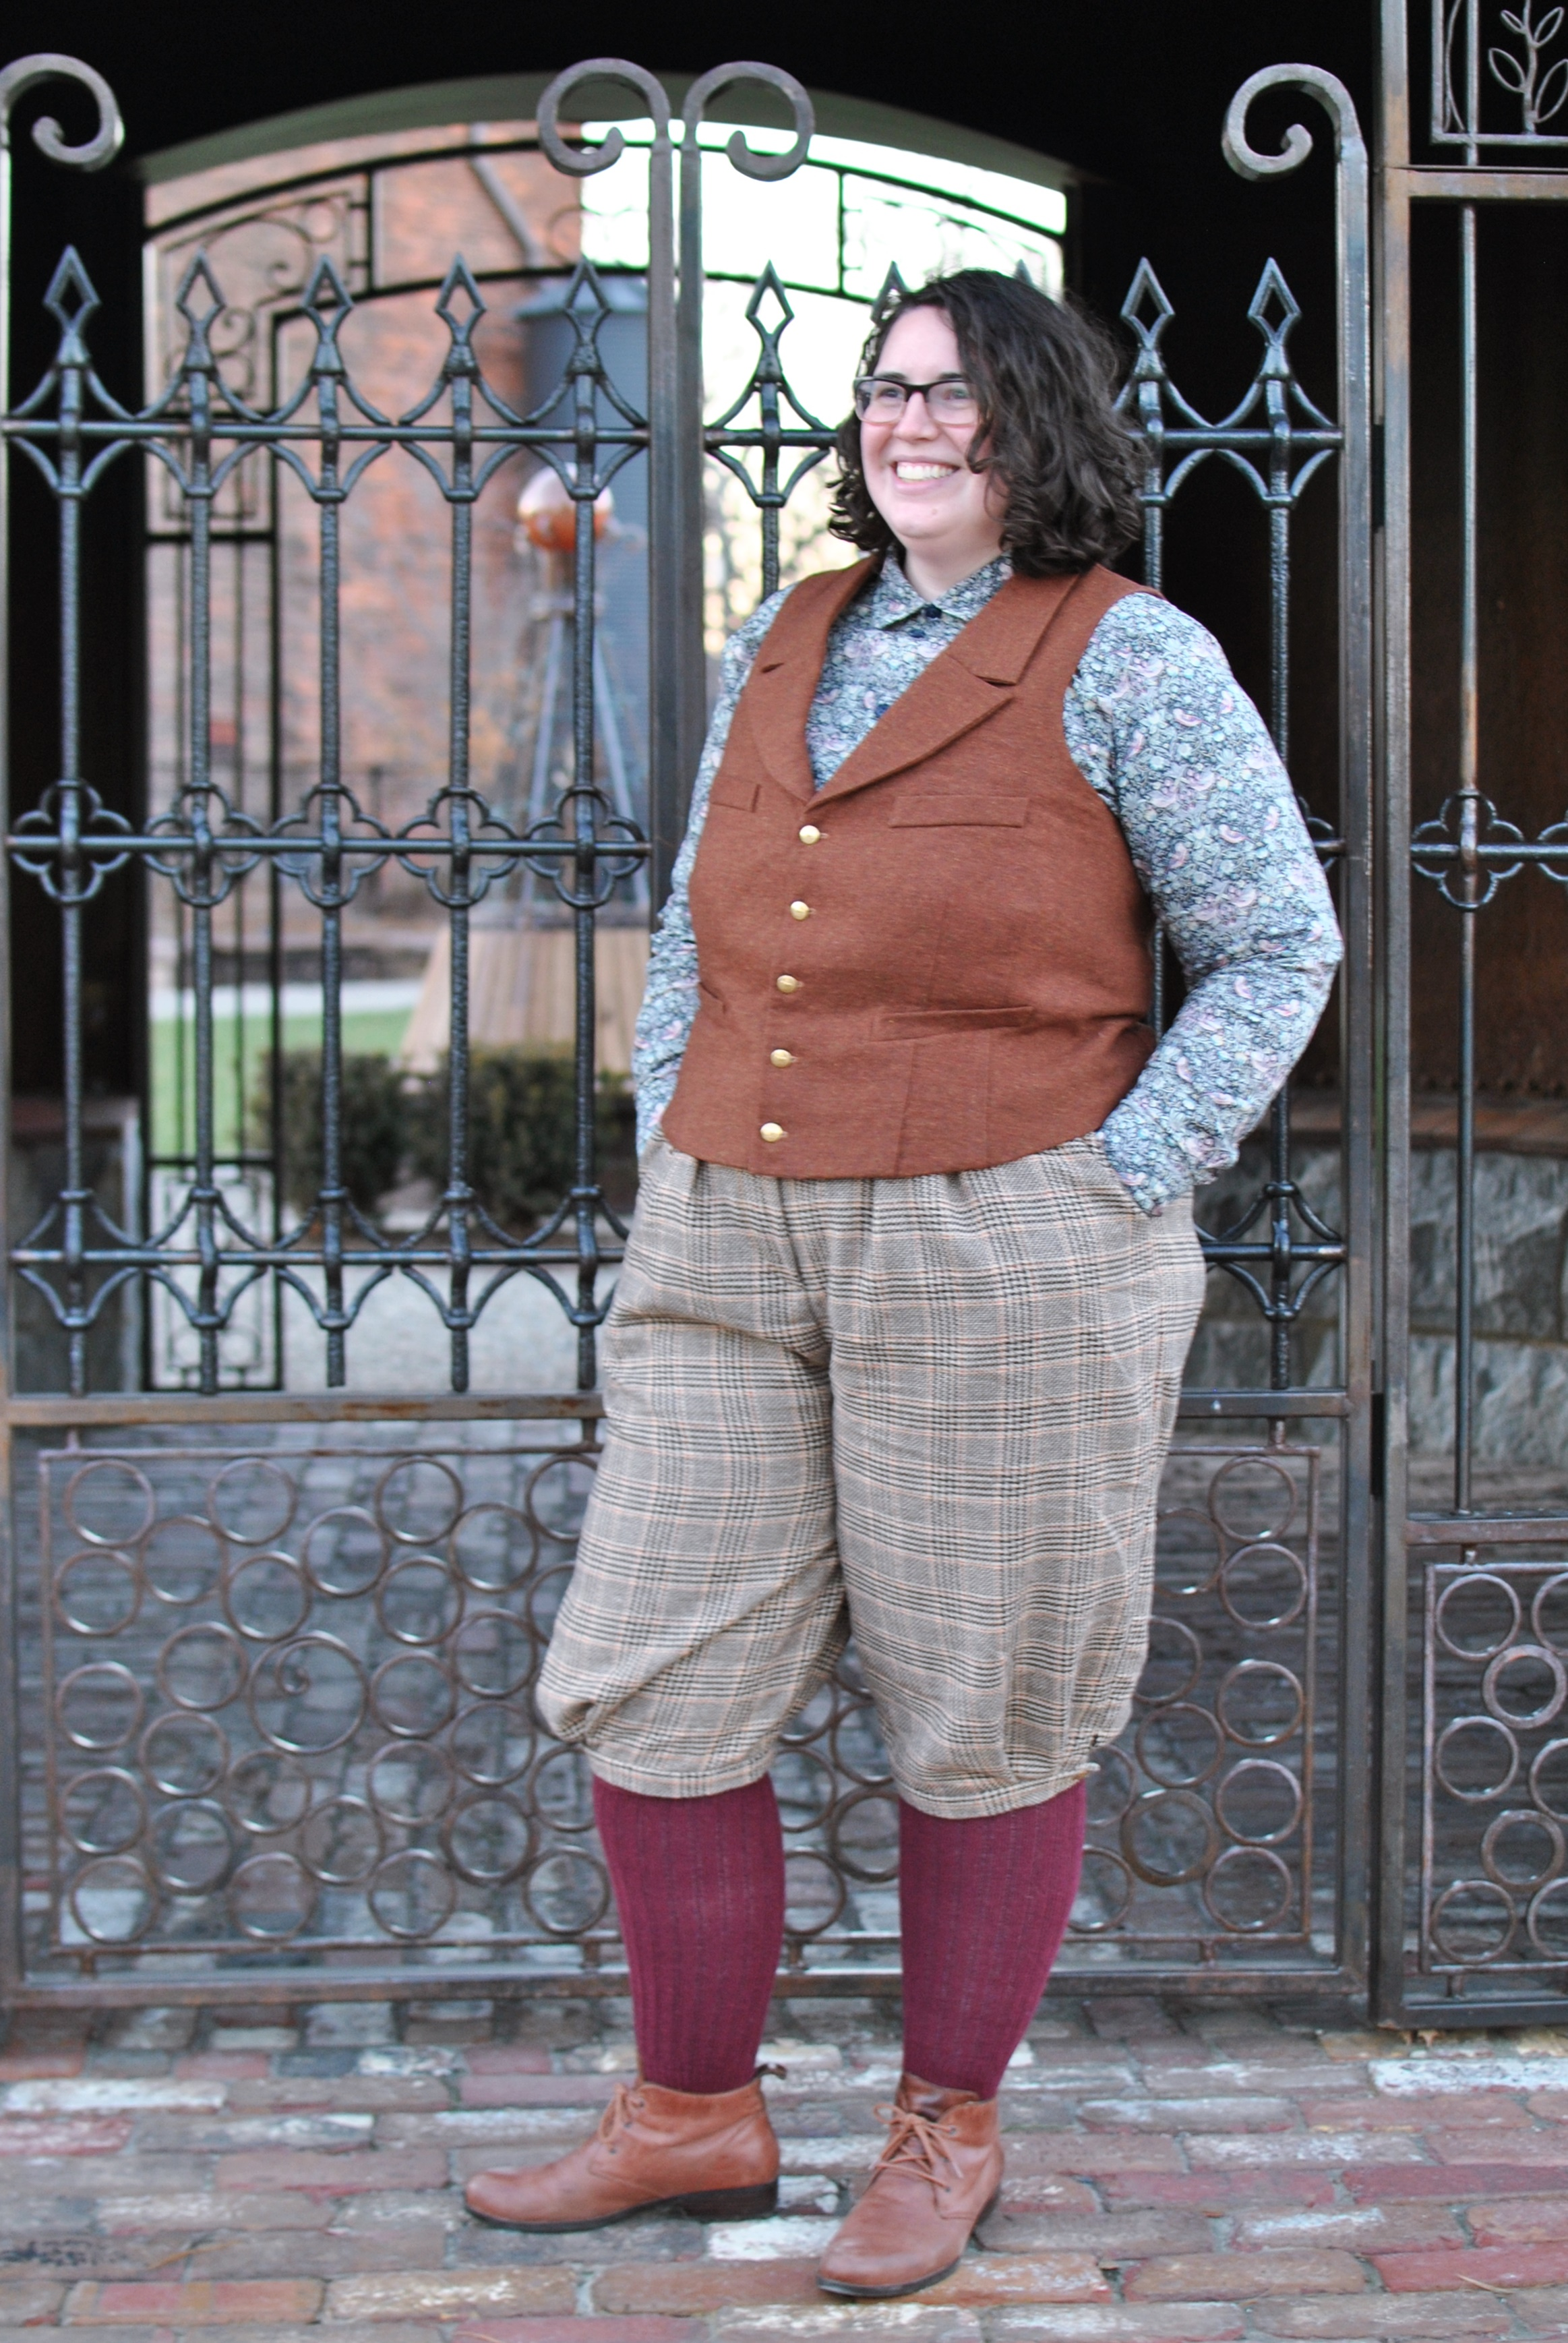 Shannon standing outdoors in front of an iron gate, wearing plaid knickerbockers, a rust wool vest, and a patterned shirt.